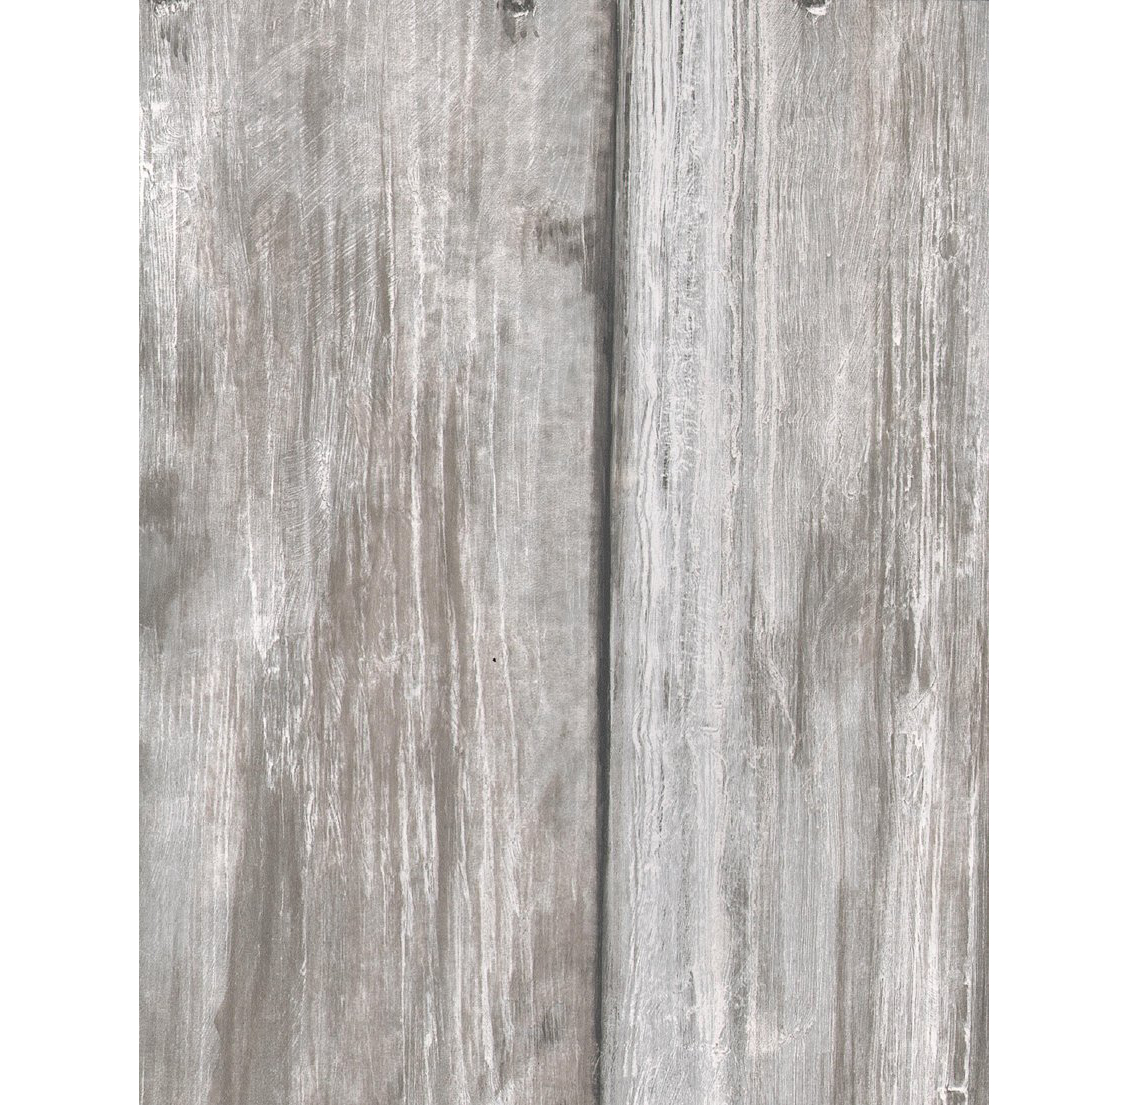 Rustic Lodge Timber Panel Wallpaper - Limed